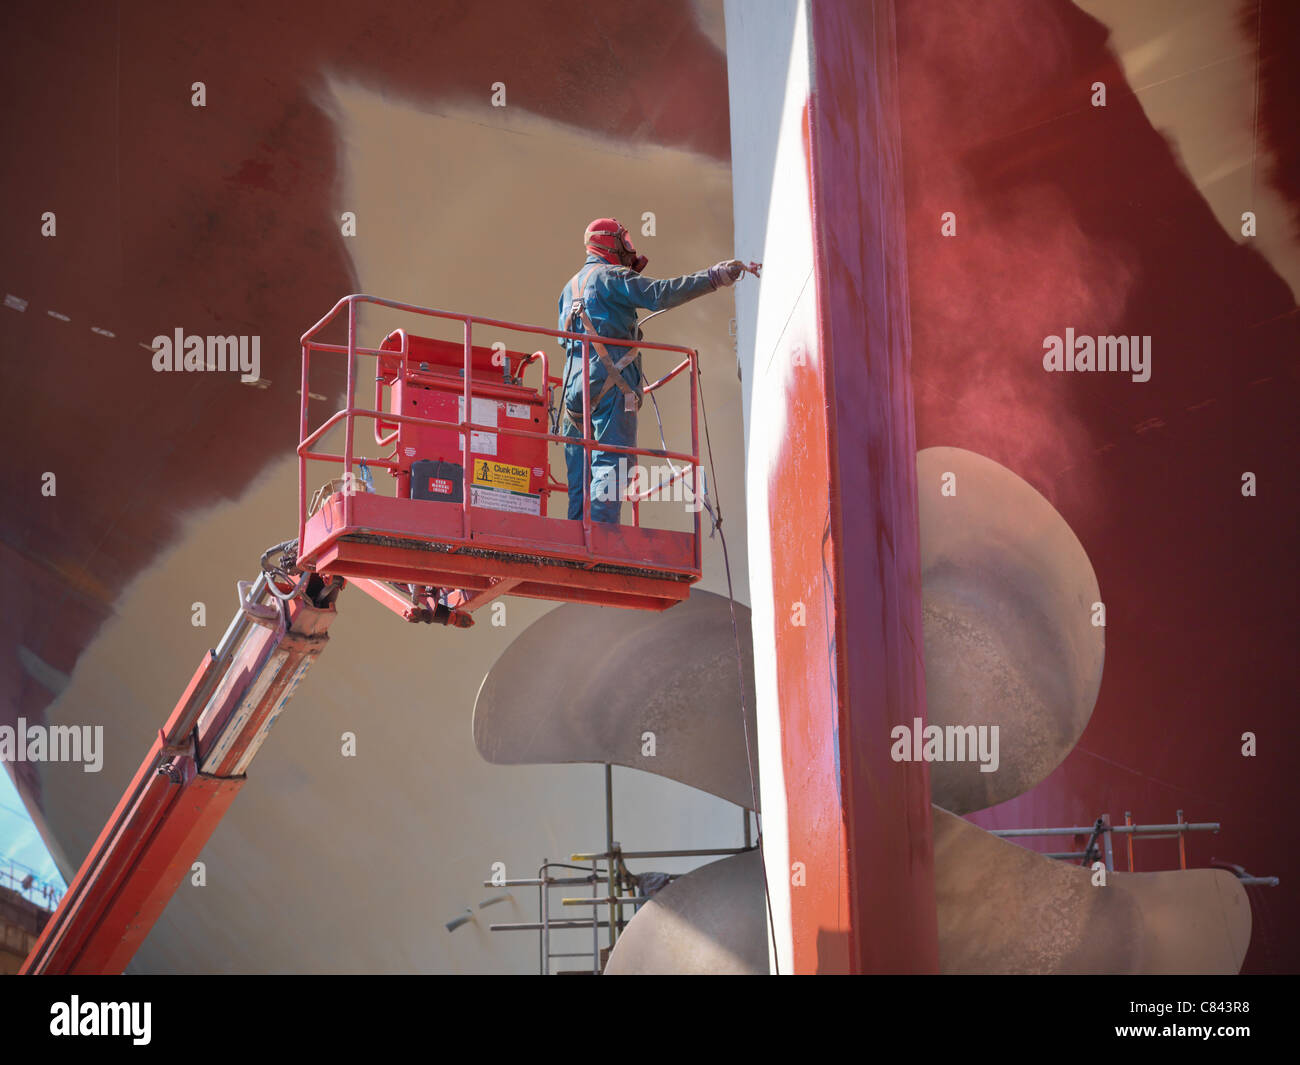 Worker painting ship's underside - Stock Image